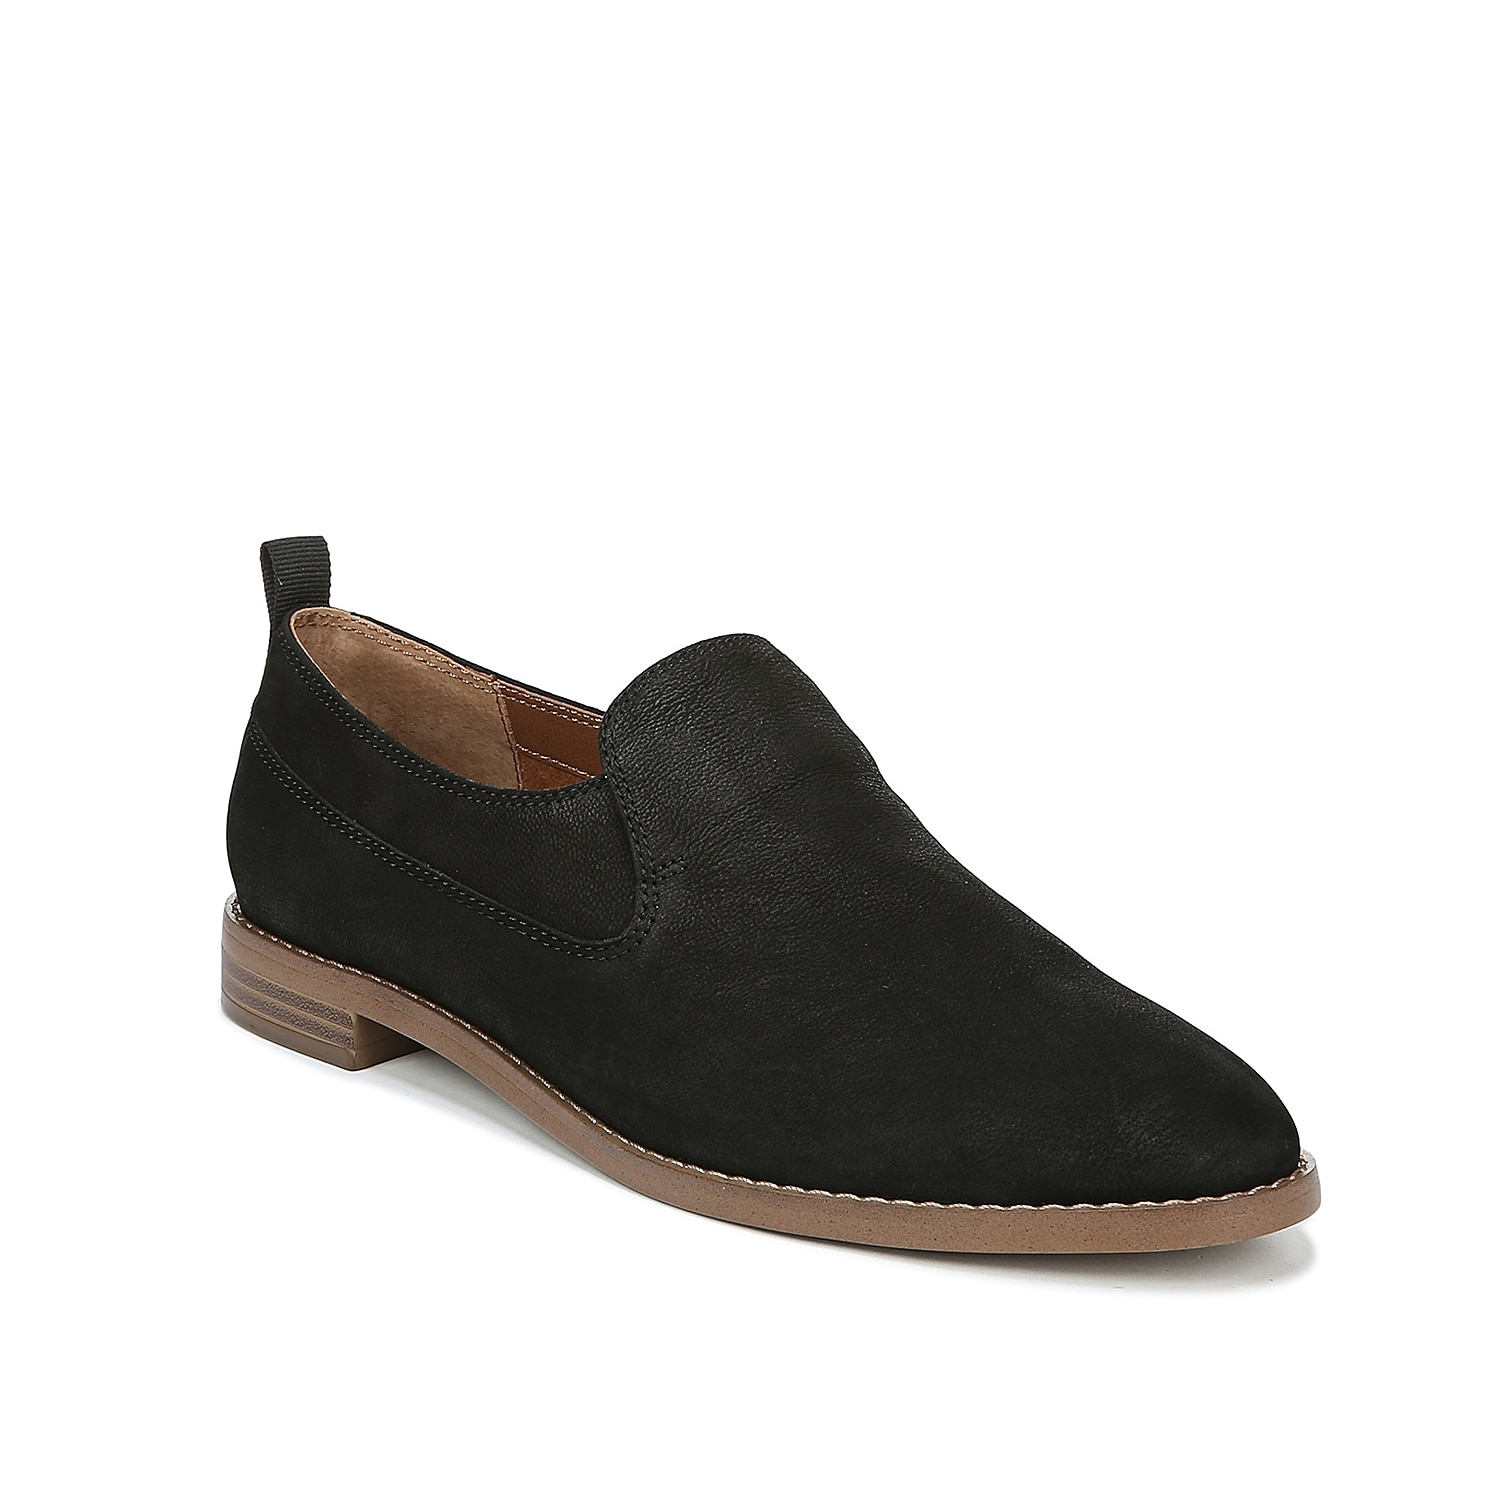 The Hum loafer from Franco Sarto will bring a sophisticated feel to any outfit. These slip-ons feature a streamlined design that can dress up skinny jeans or bring a laidback touch to cropped slacks.